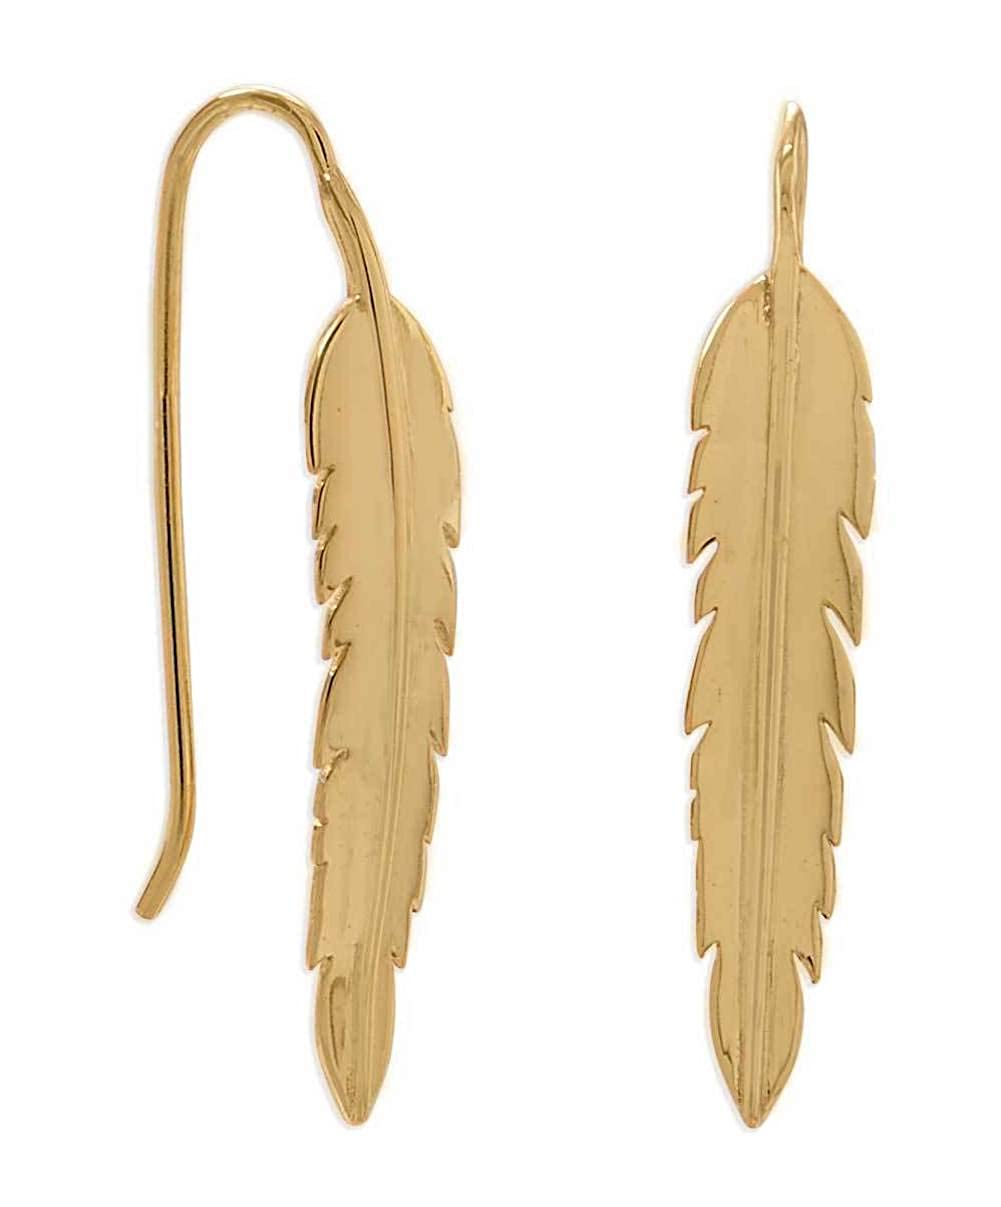 32.5m 14K Gold Plated Sterling Silver Feather Wire Dangle Earrings